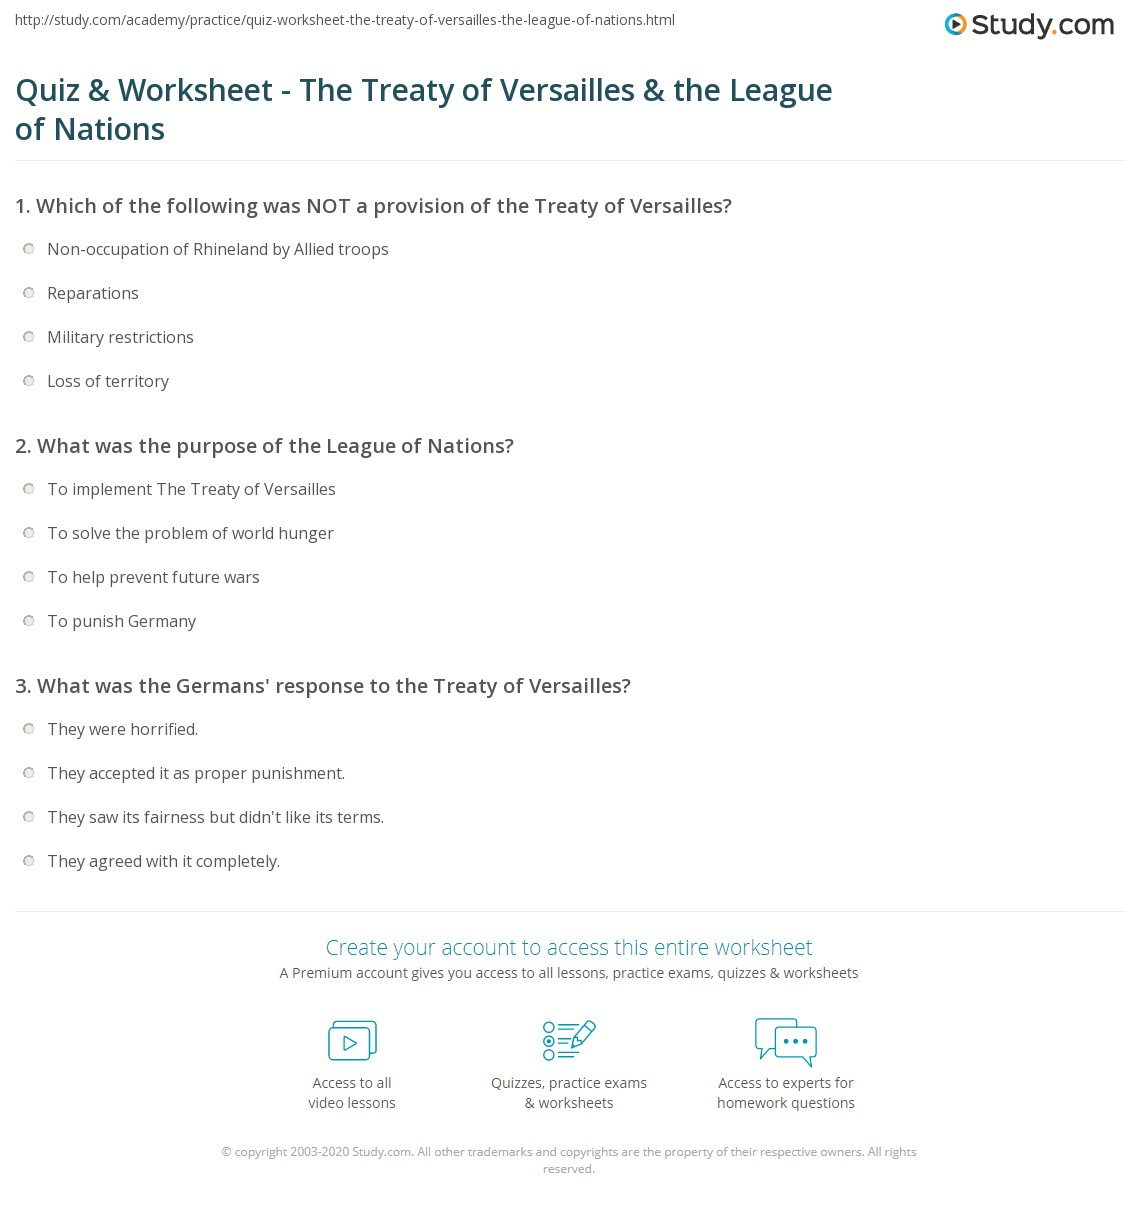 quiz worksheet the treaty of versailles the league of nations. Black Bedroom Furniture Sets. Home Design Ideas